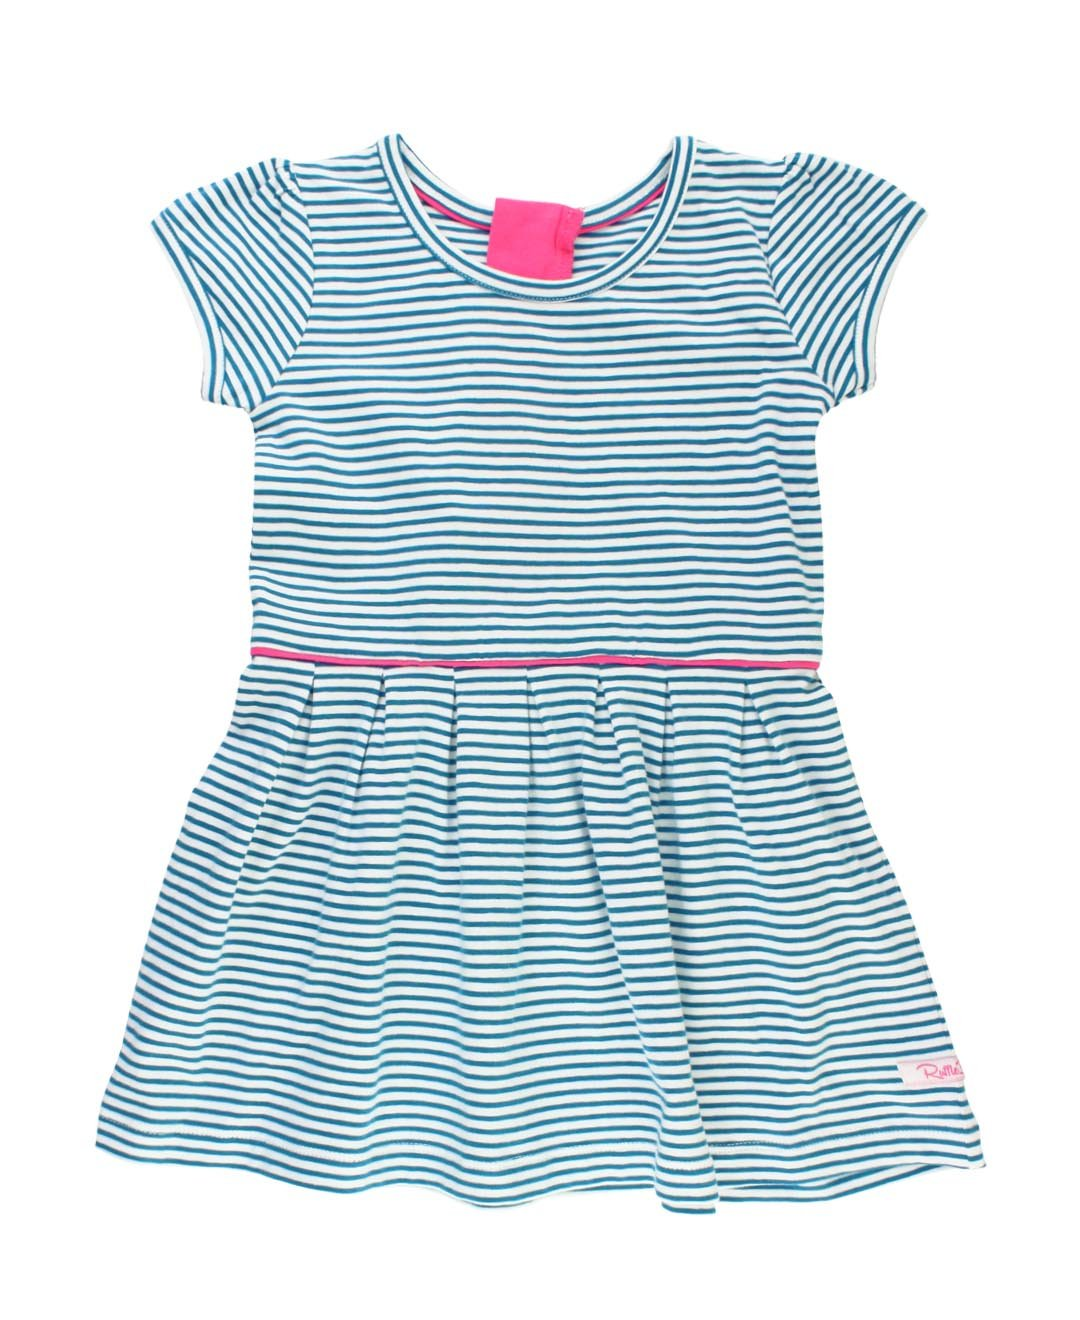 64b43e2f932f Amazon.com  RuffleButts Little Girls Bright Blue Stripe Short Sleeve Knit  A-Line Dress  Clothing